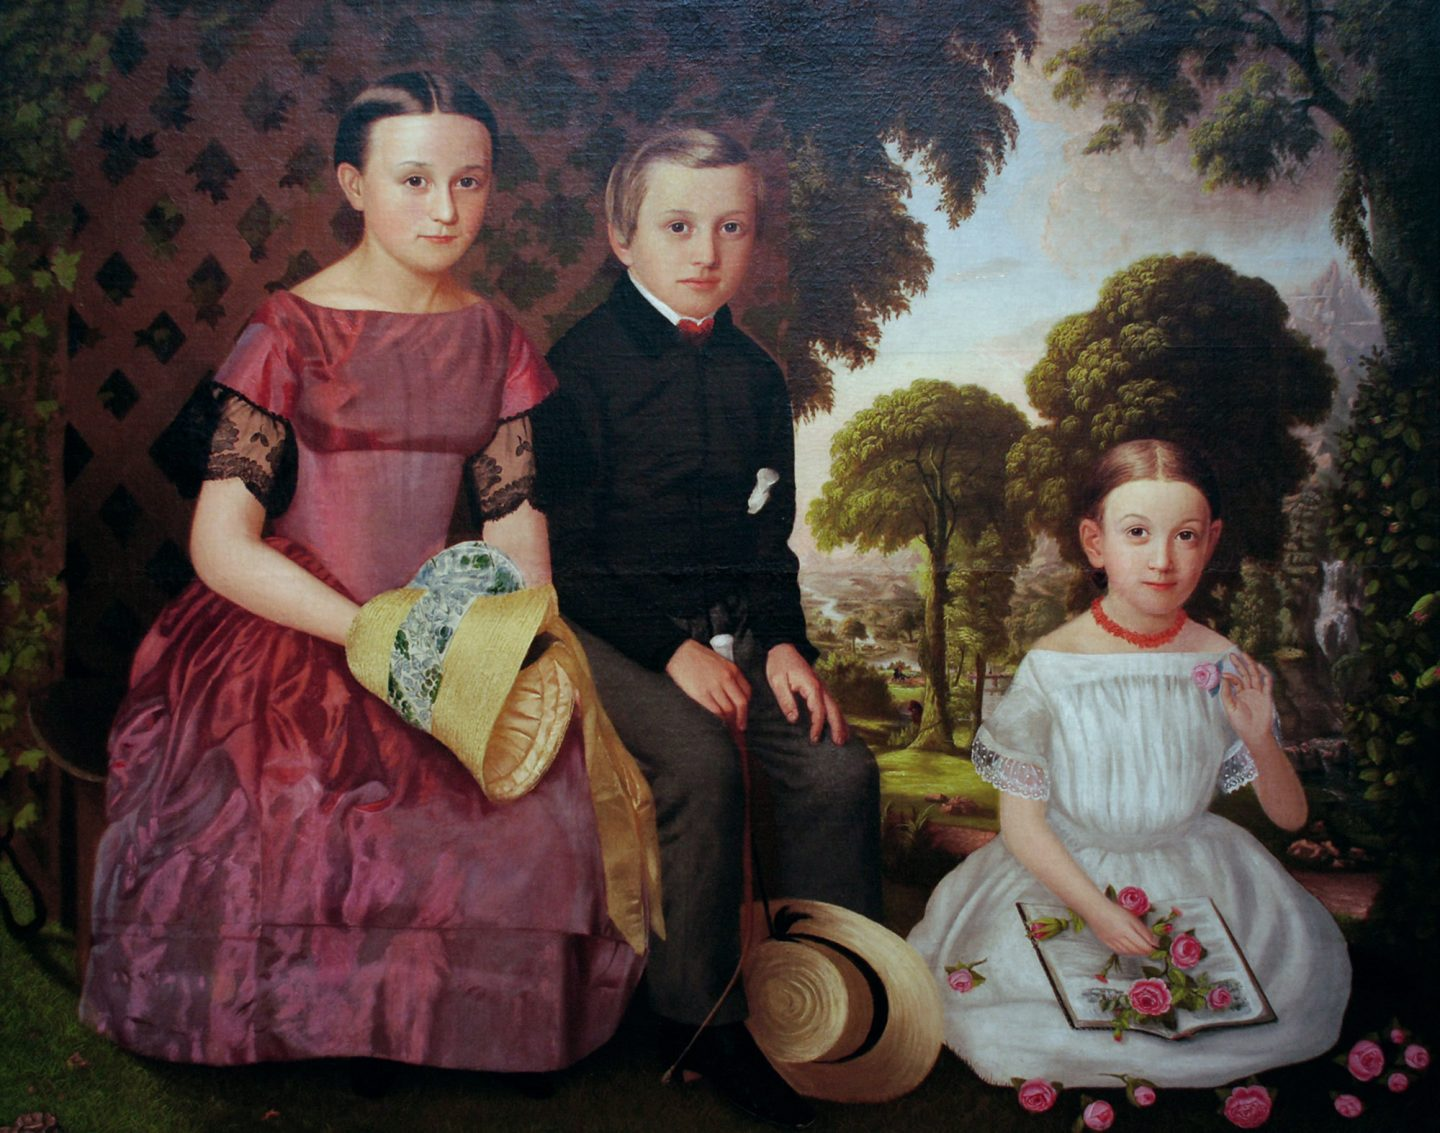 American, 19th century. The Fowler Children, 1854. Oil on canvas, 49 × 61 1/4 inches. Gift of the Estate of Mrs. Ernest C. Schnuck, 1976.1